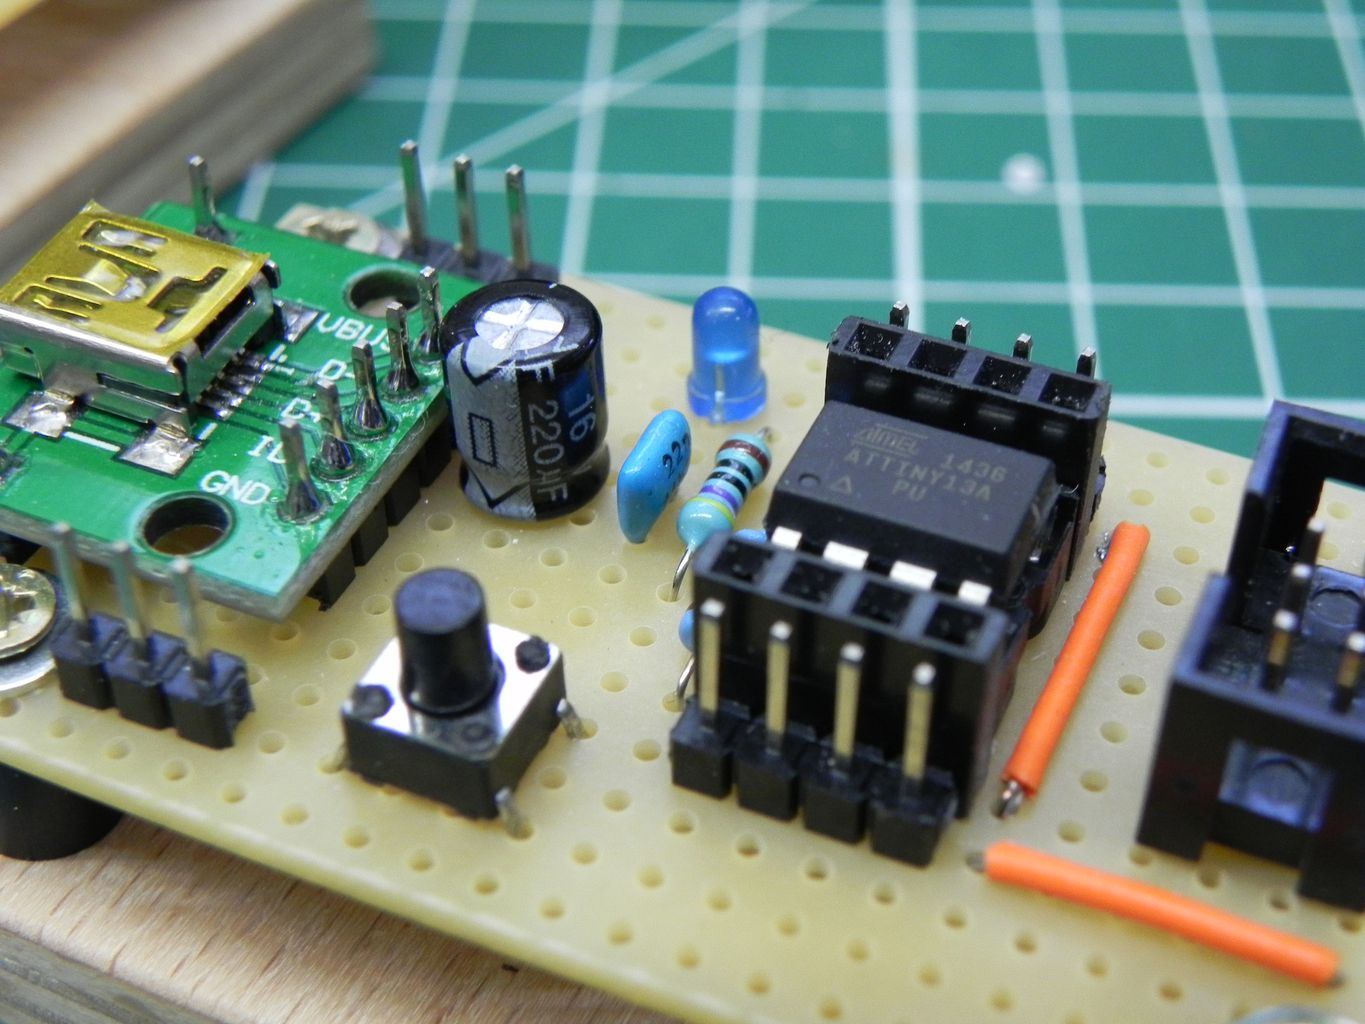 Breakout board for 8-pin ATtiny microcontrollers